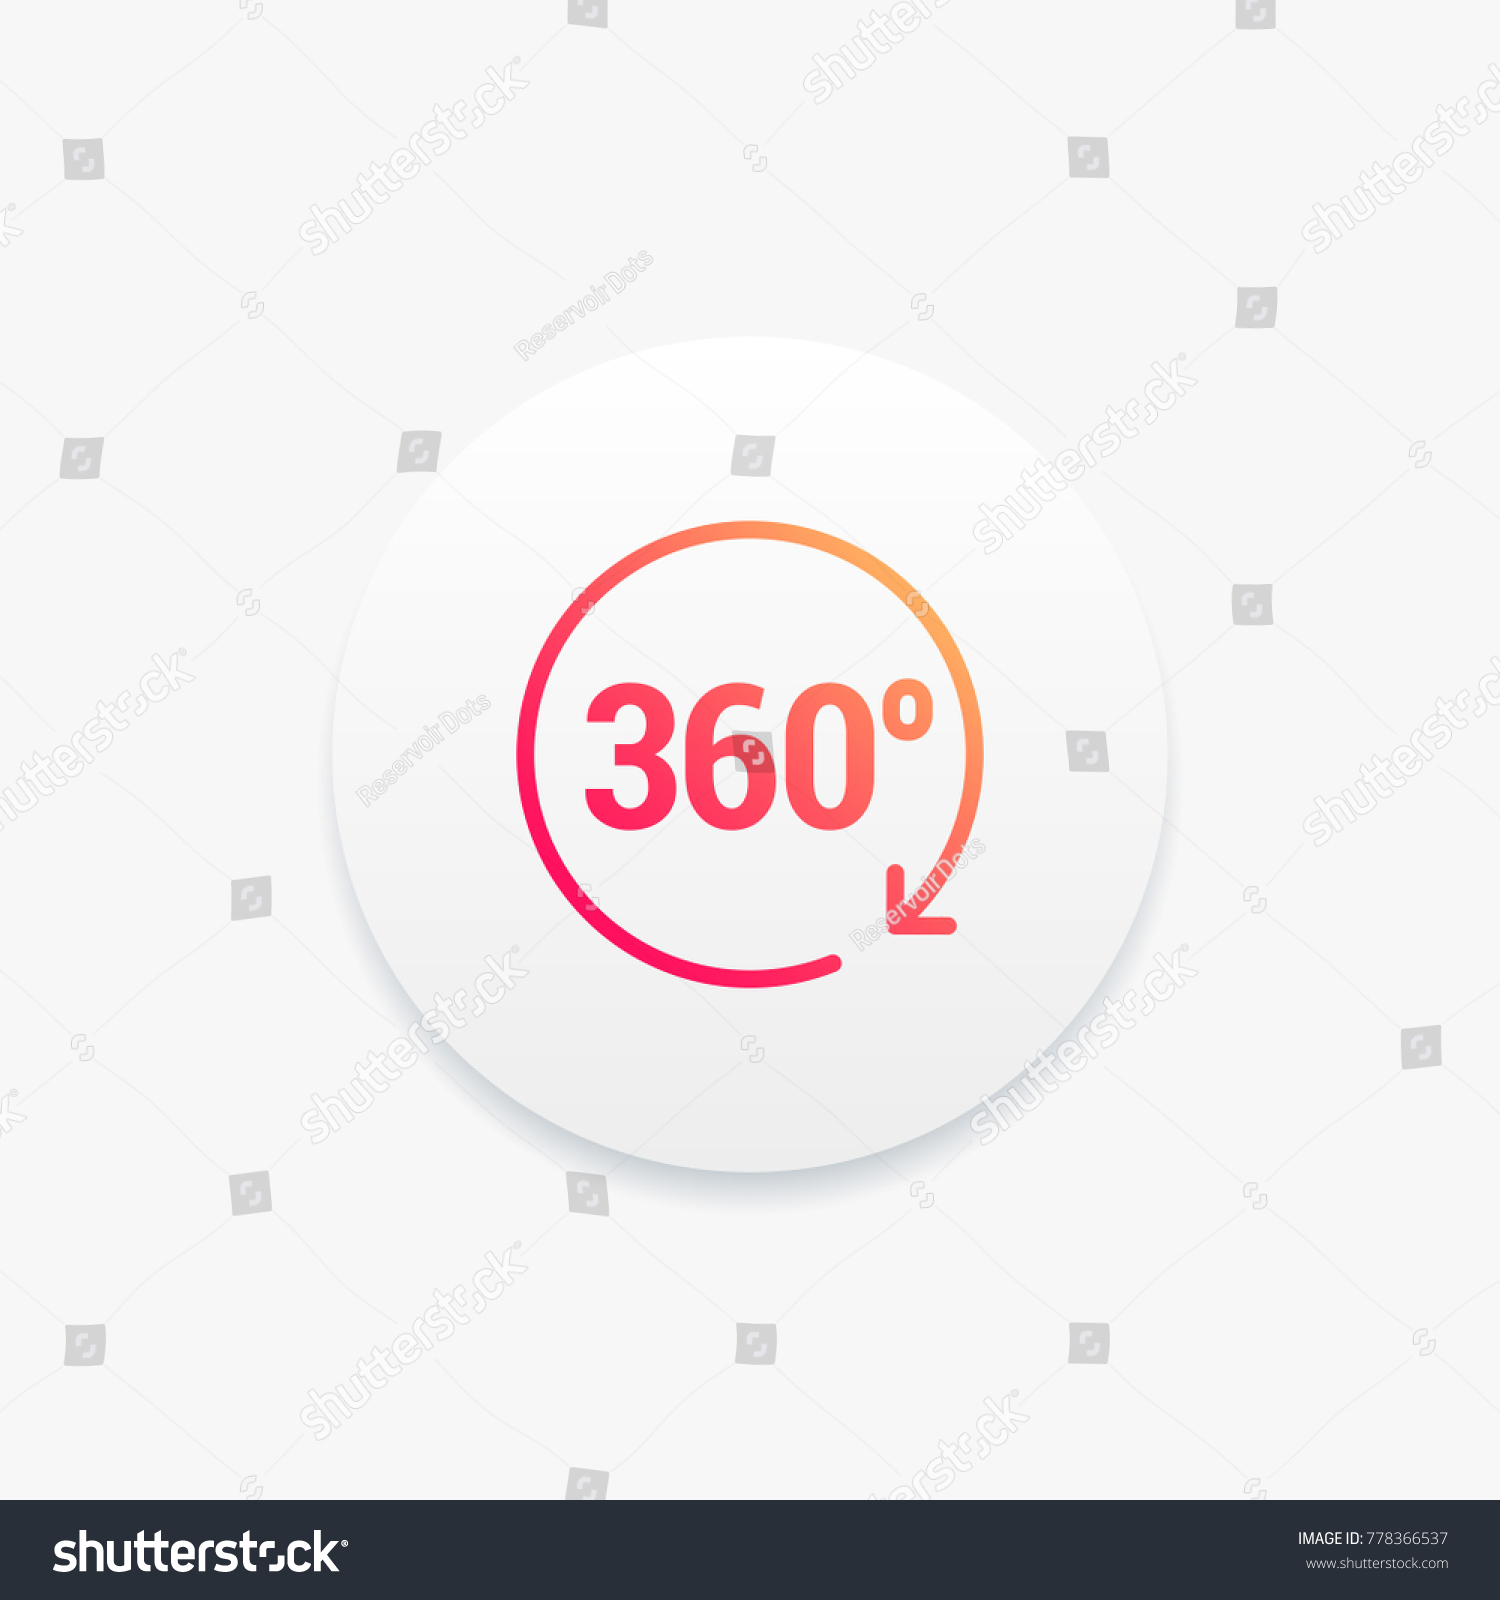 360 Degrees Angle Icon Stock Vector Royalty Free 778366537 In A Circle Diagram